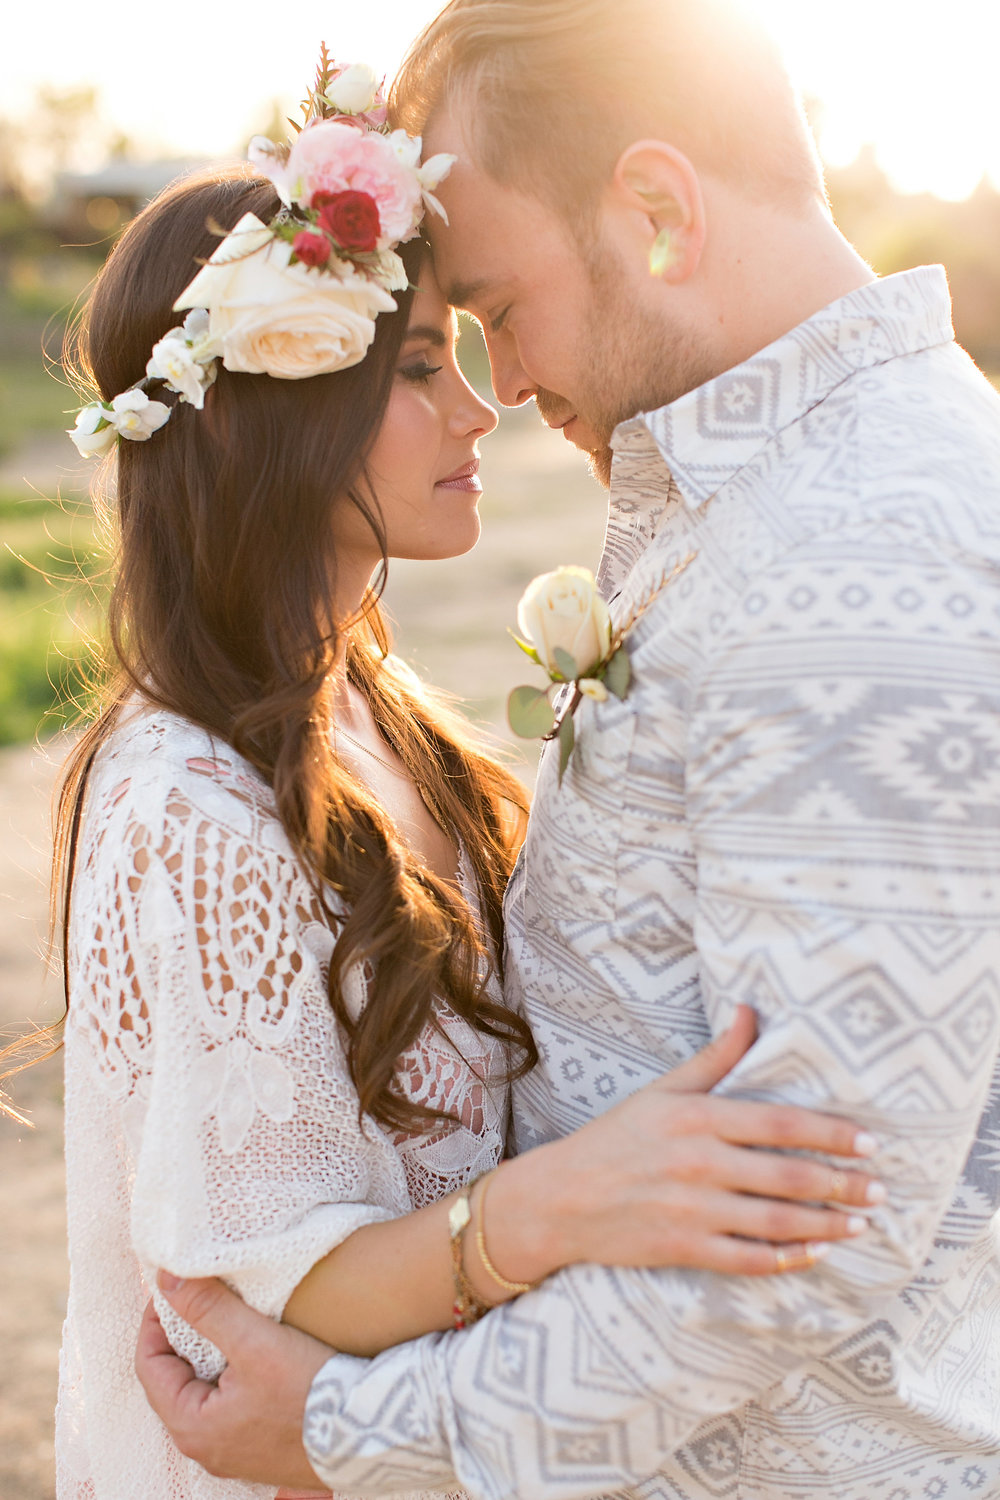 Rustic Bohemian Styled Shoot - Stacee Lianna Photography - Southern California Bride Magazine Feature